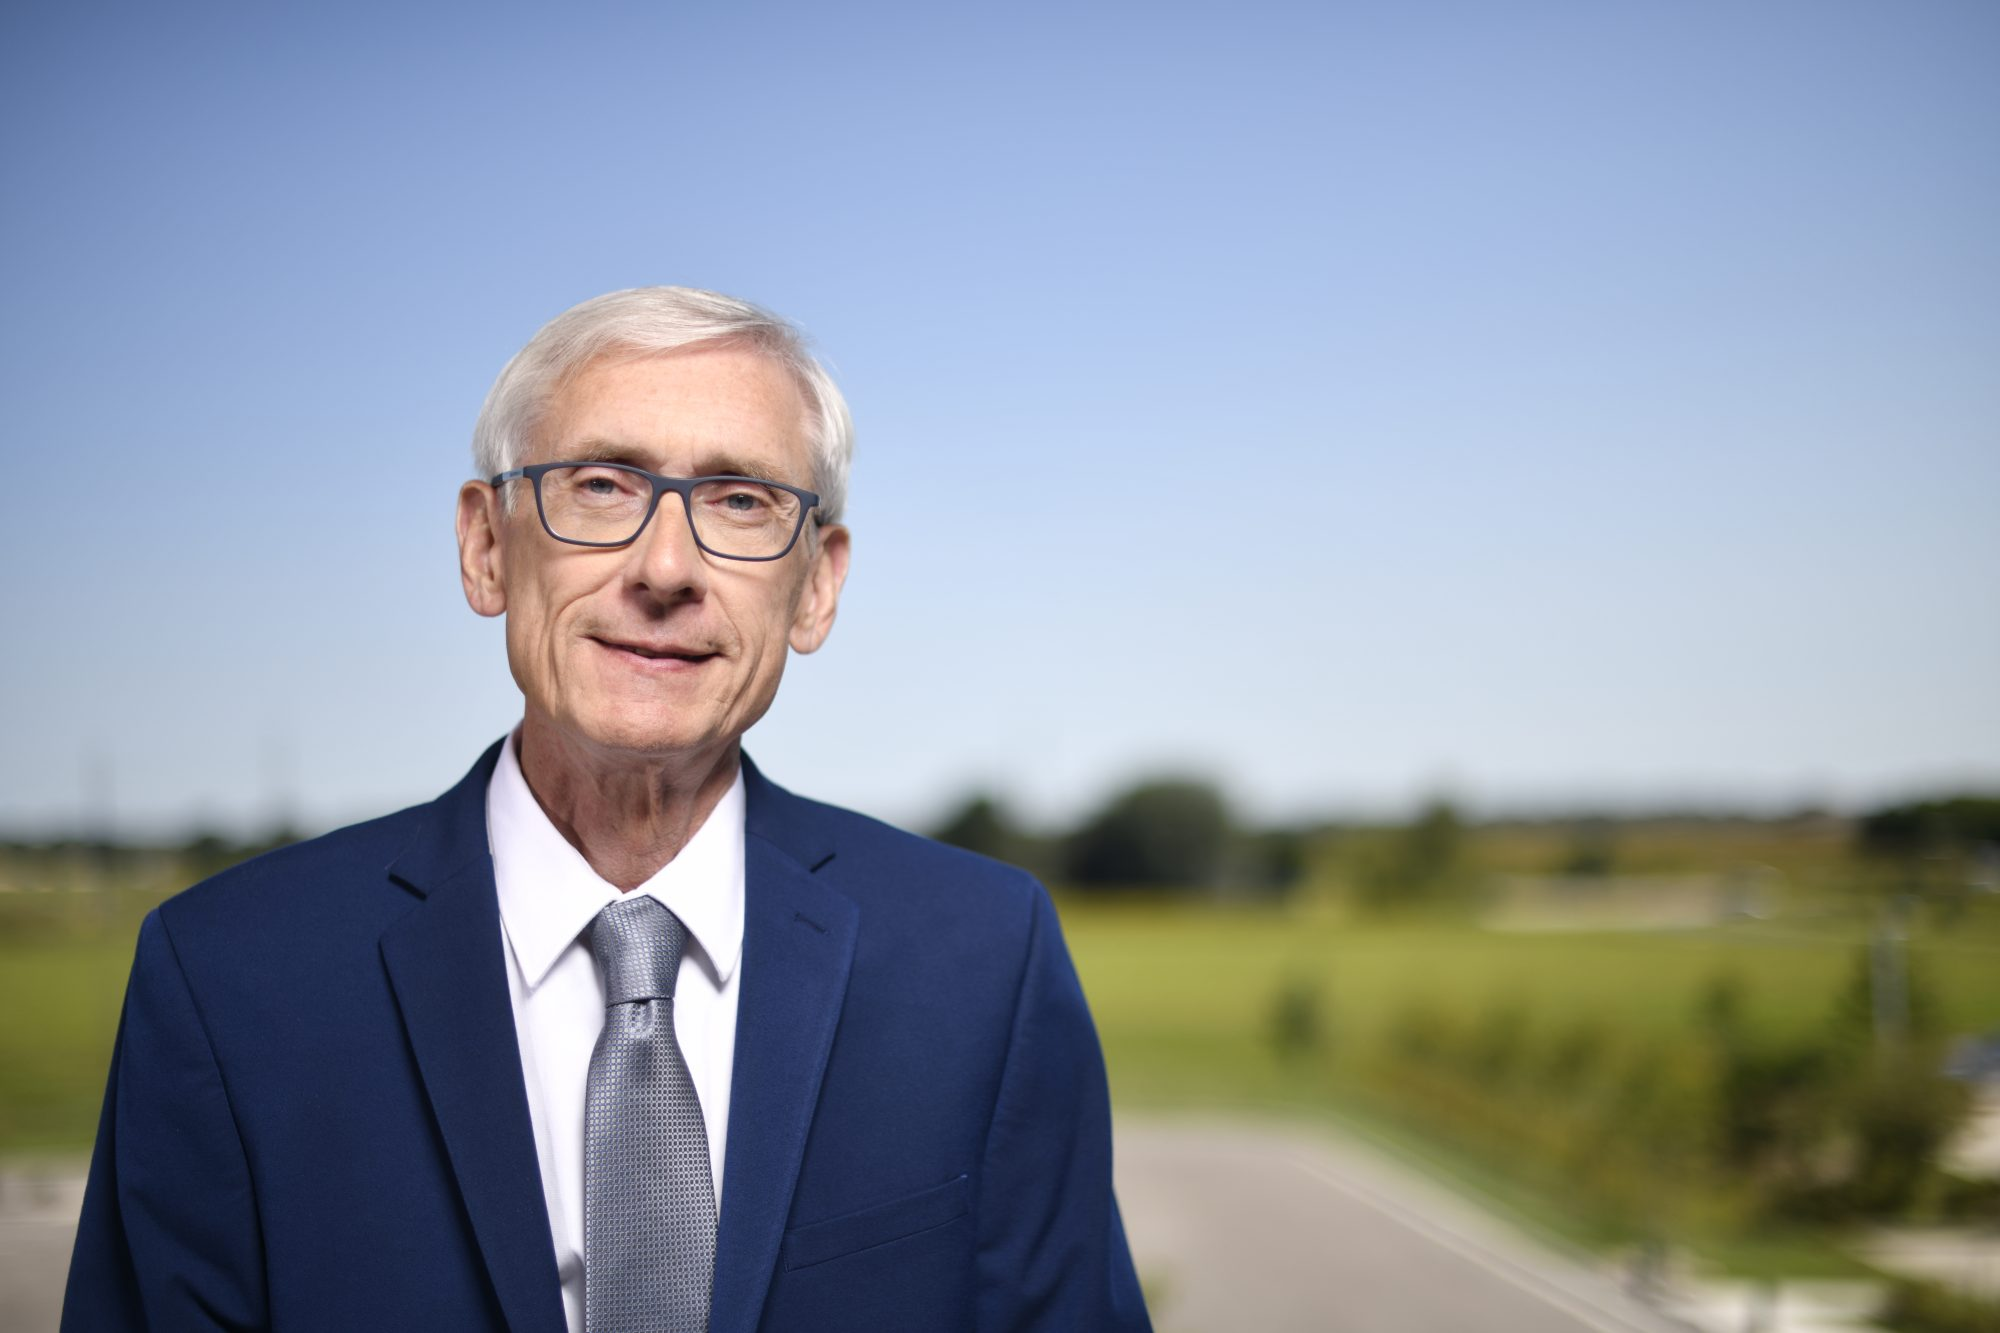 Press Release: Gov. Evers Delivers Weekly Democratic Radio Address on Wisconsin Values during COVID-19